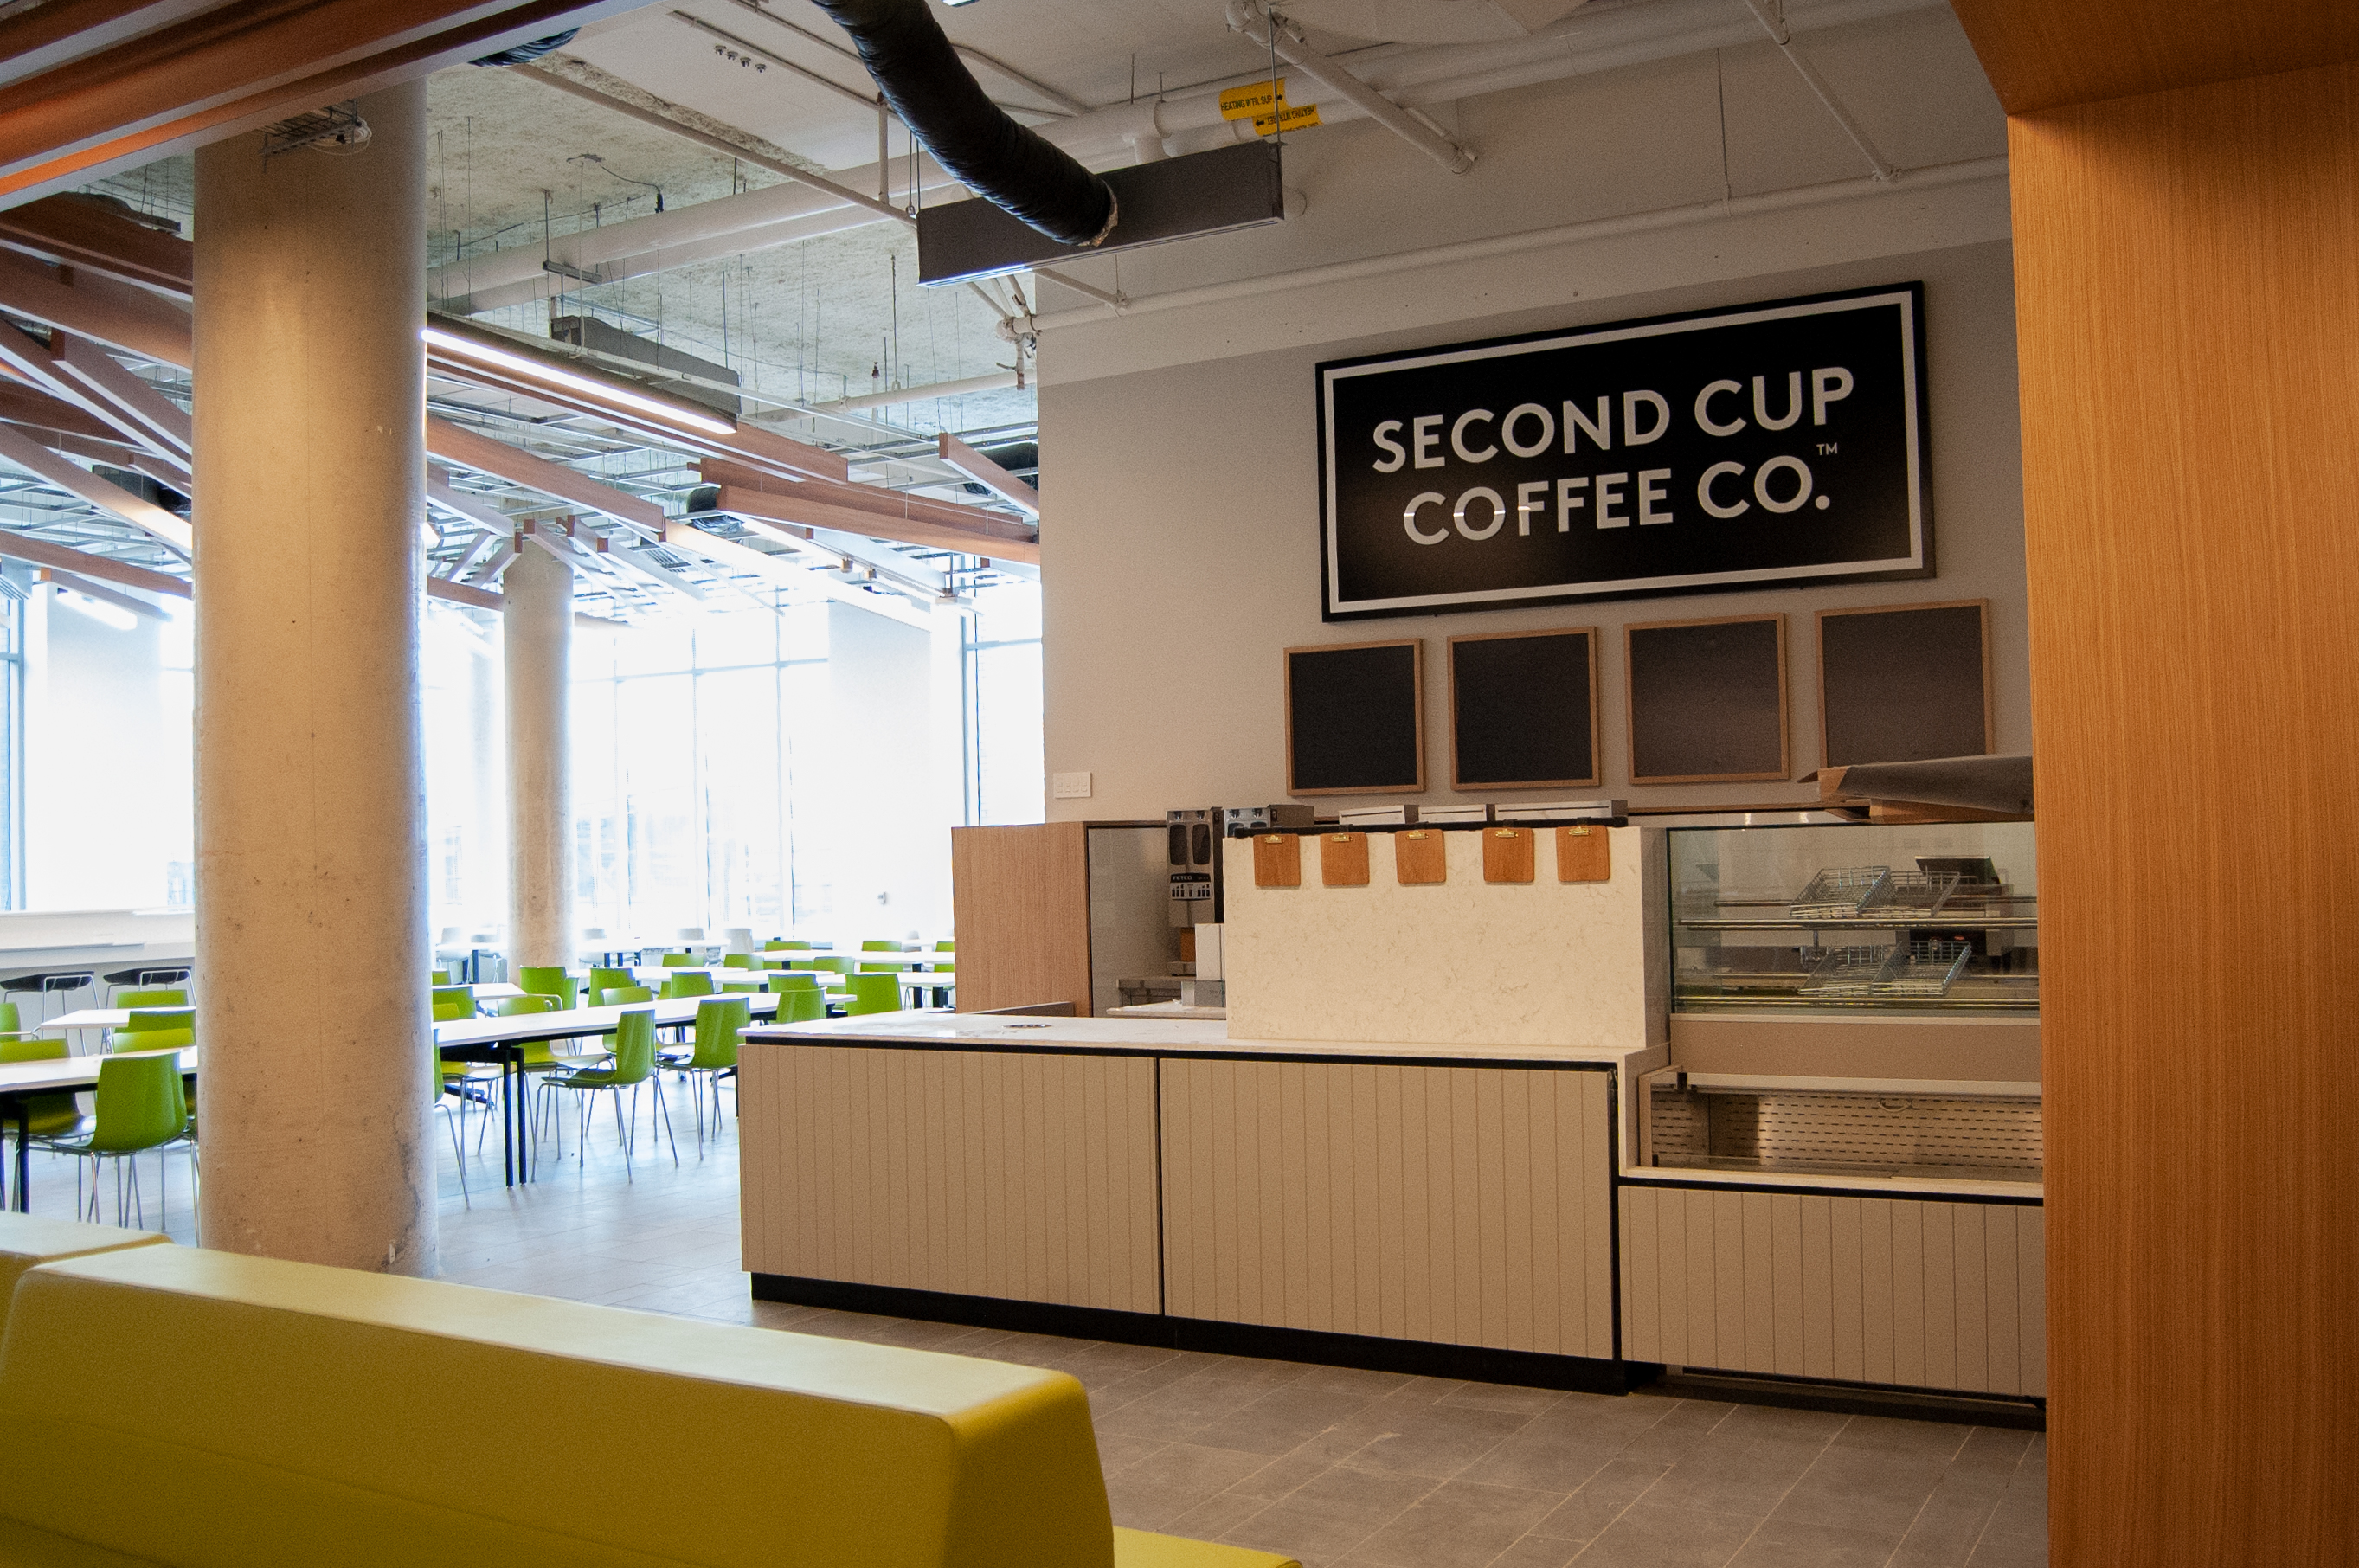 View of Second Cup from a distance